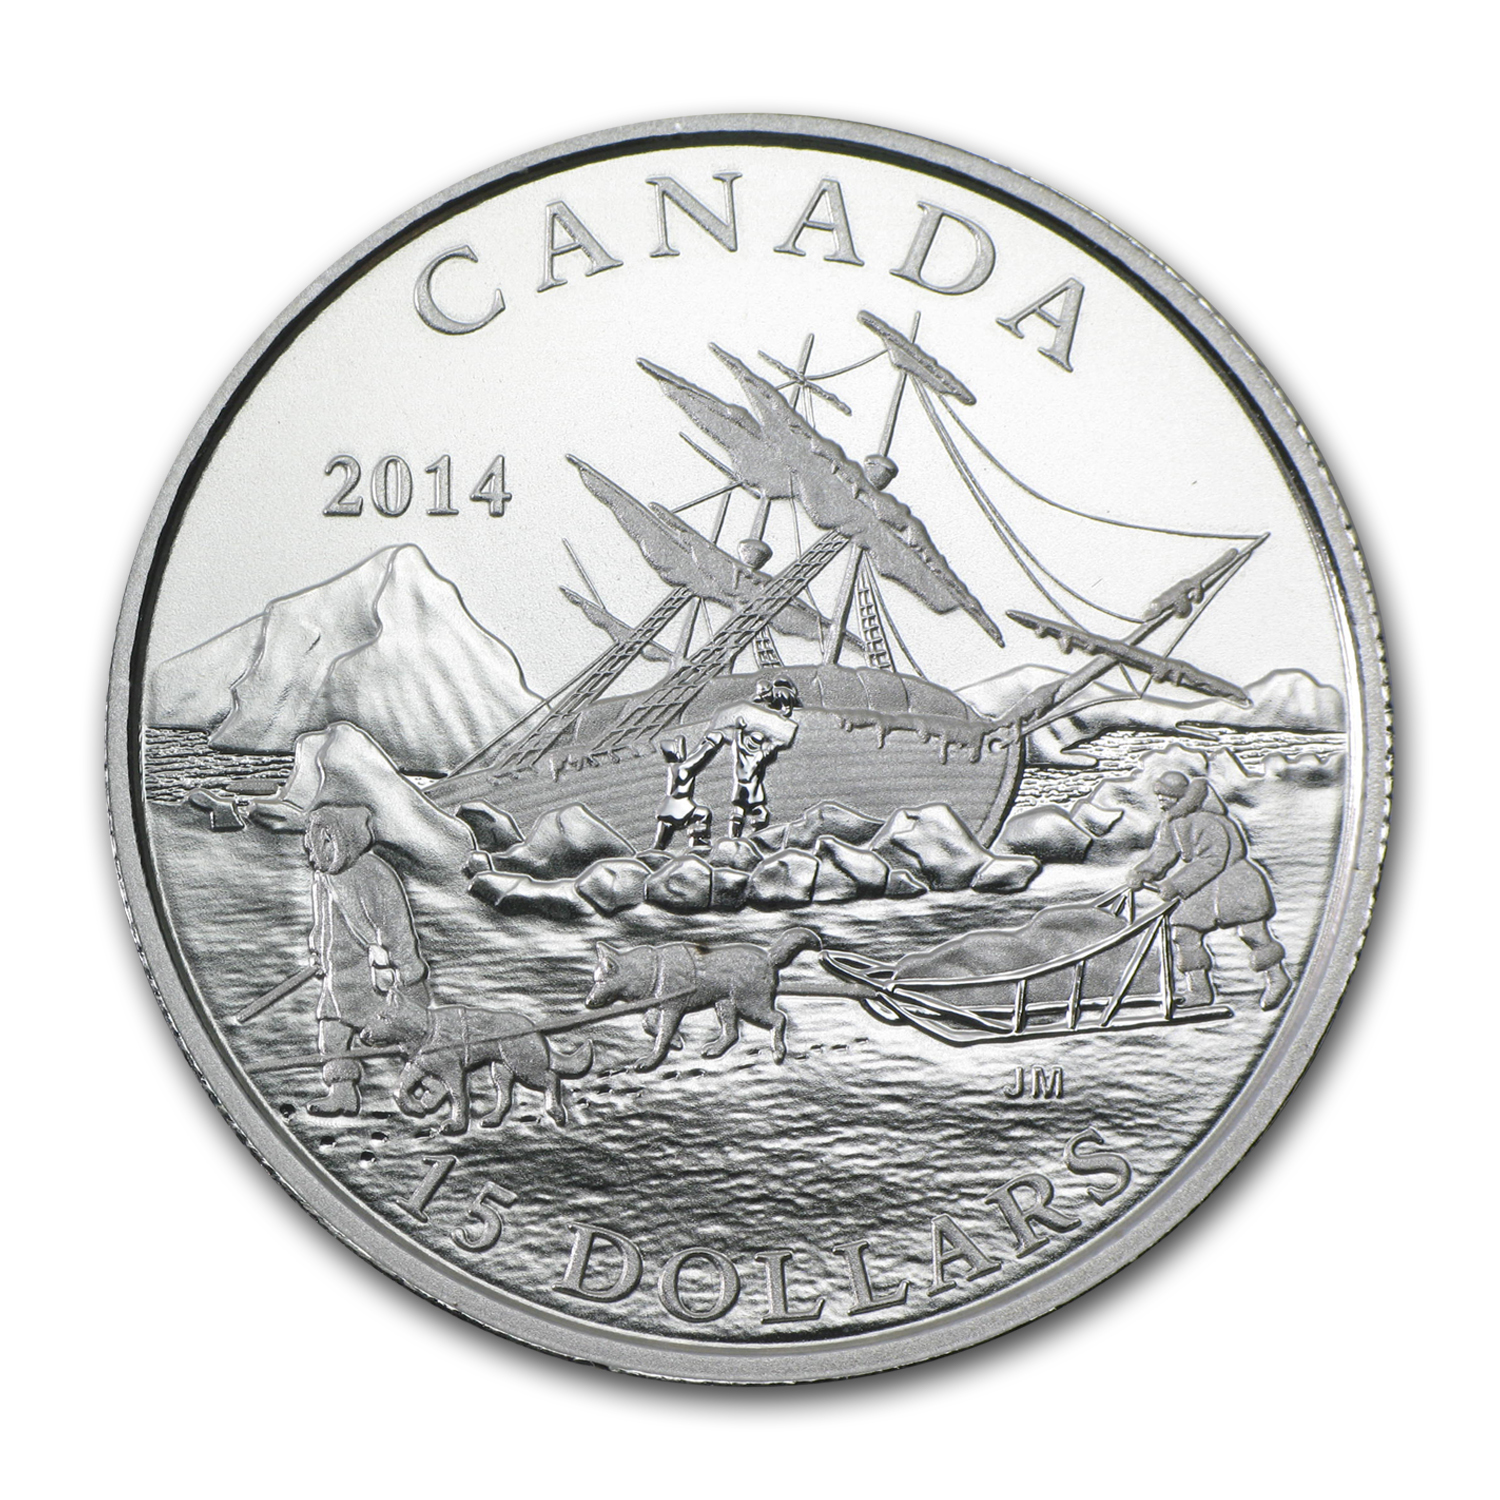 2014 Canada Silver $15 Exploring Canada The Arctic Expedition